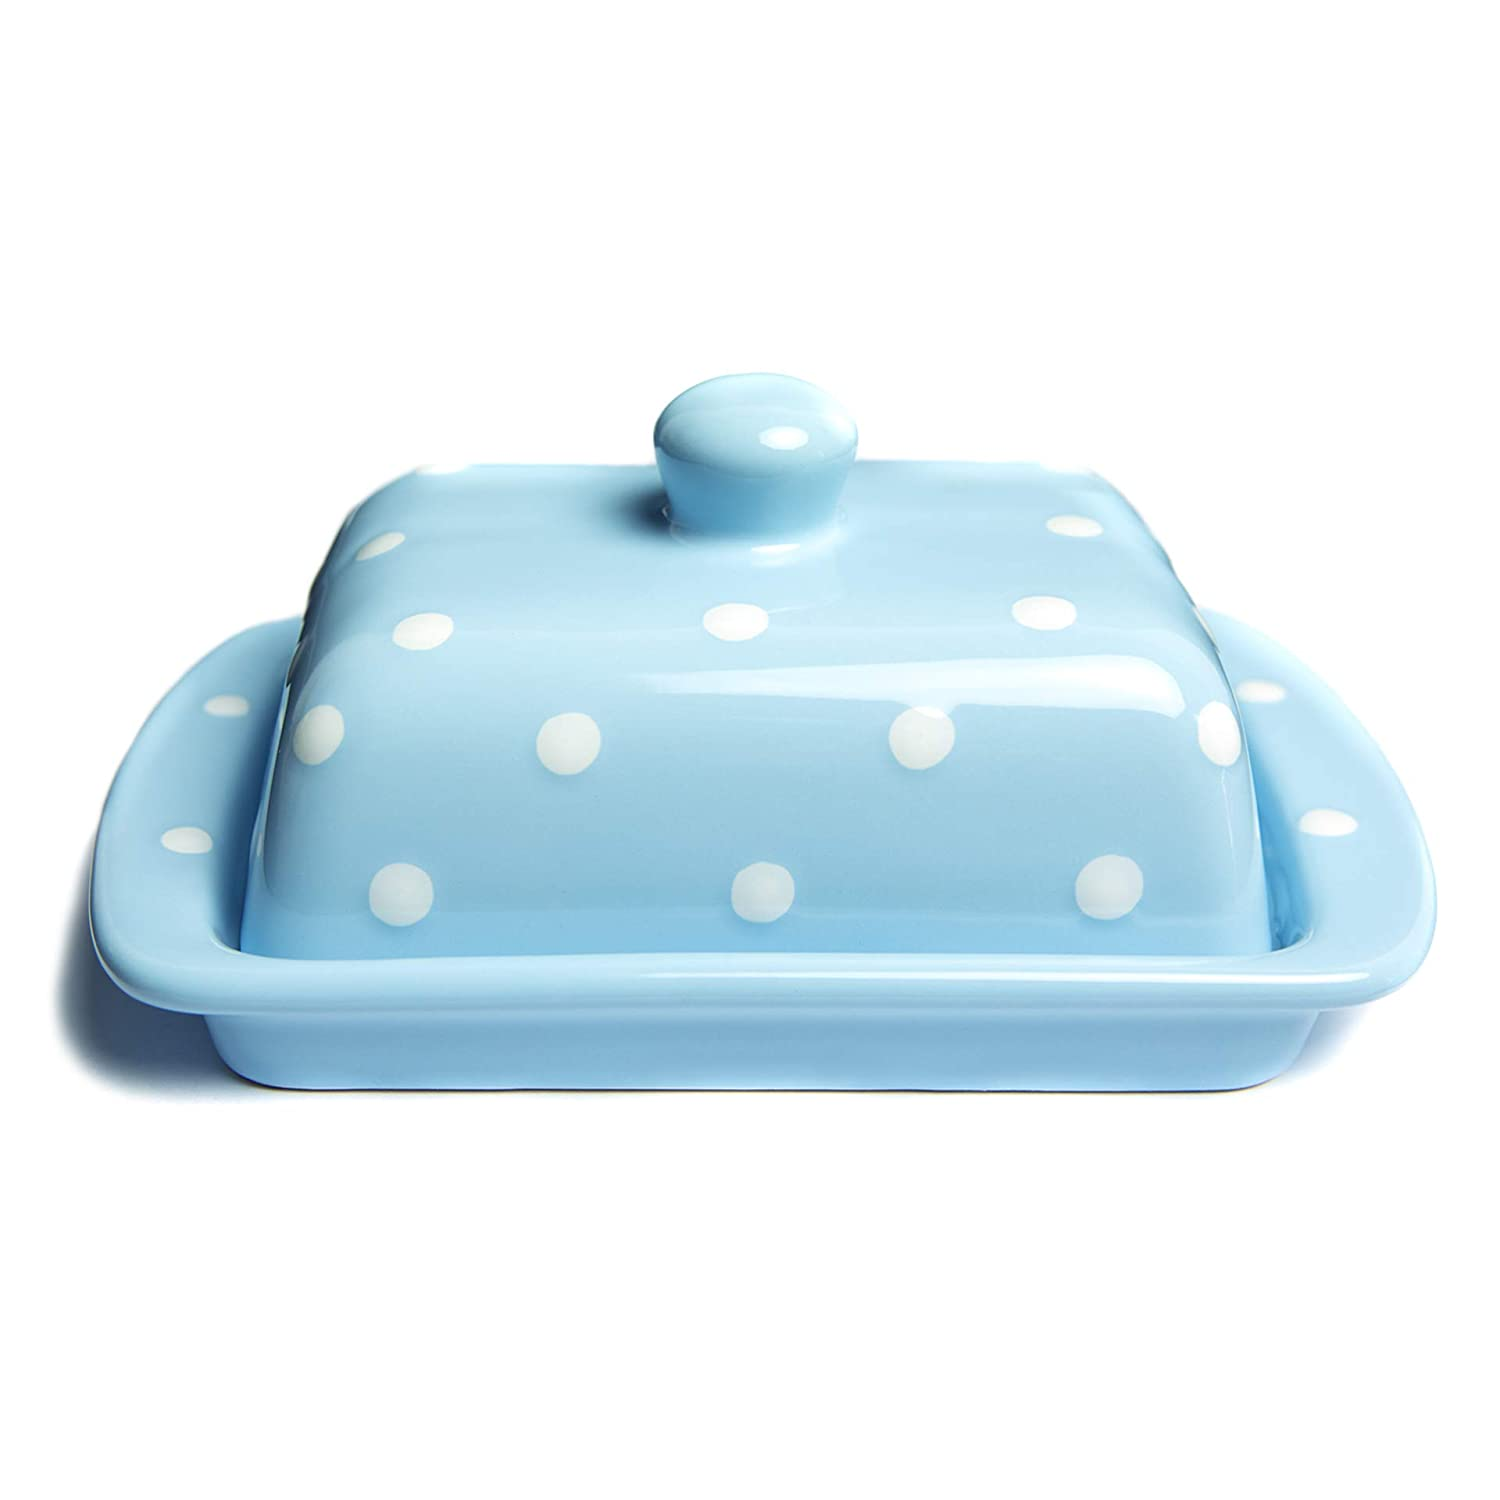 City to Cottage Light Sky Blue And White Polka Dot Spotty Handmade Hand Painted Ceramic Covered Butter Dish With Lid citytocottage.co.uk